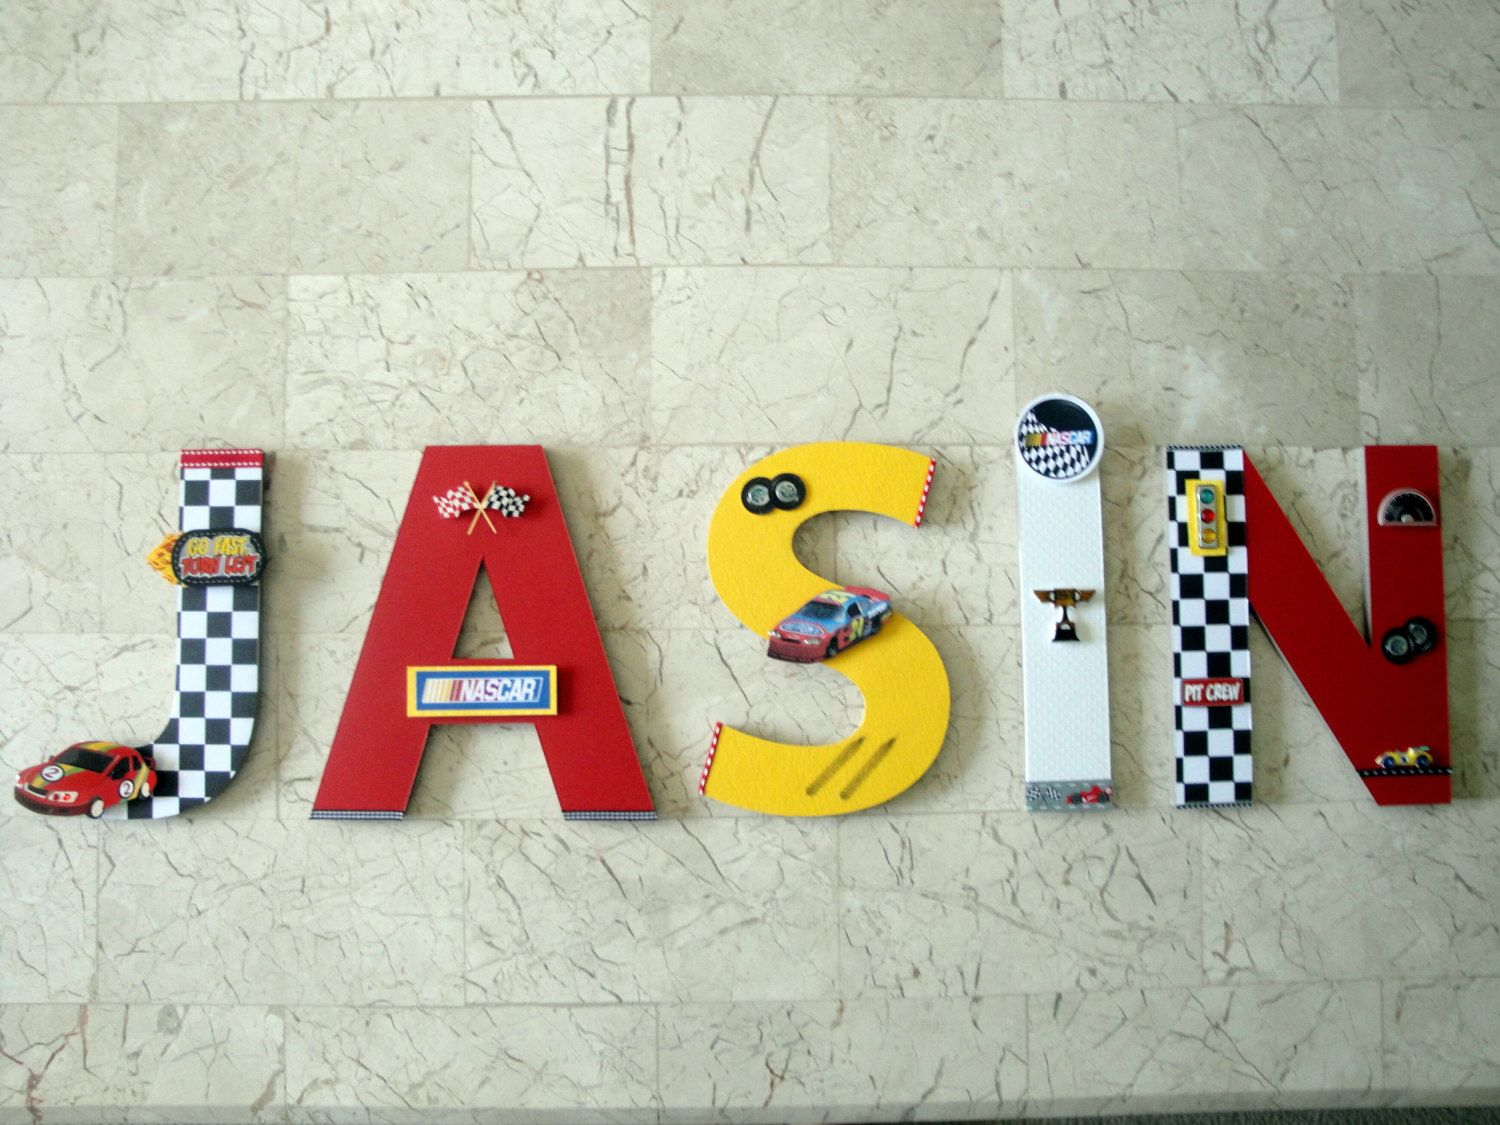 New nascar race car wall letters custom wall letters Wall letters decor